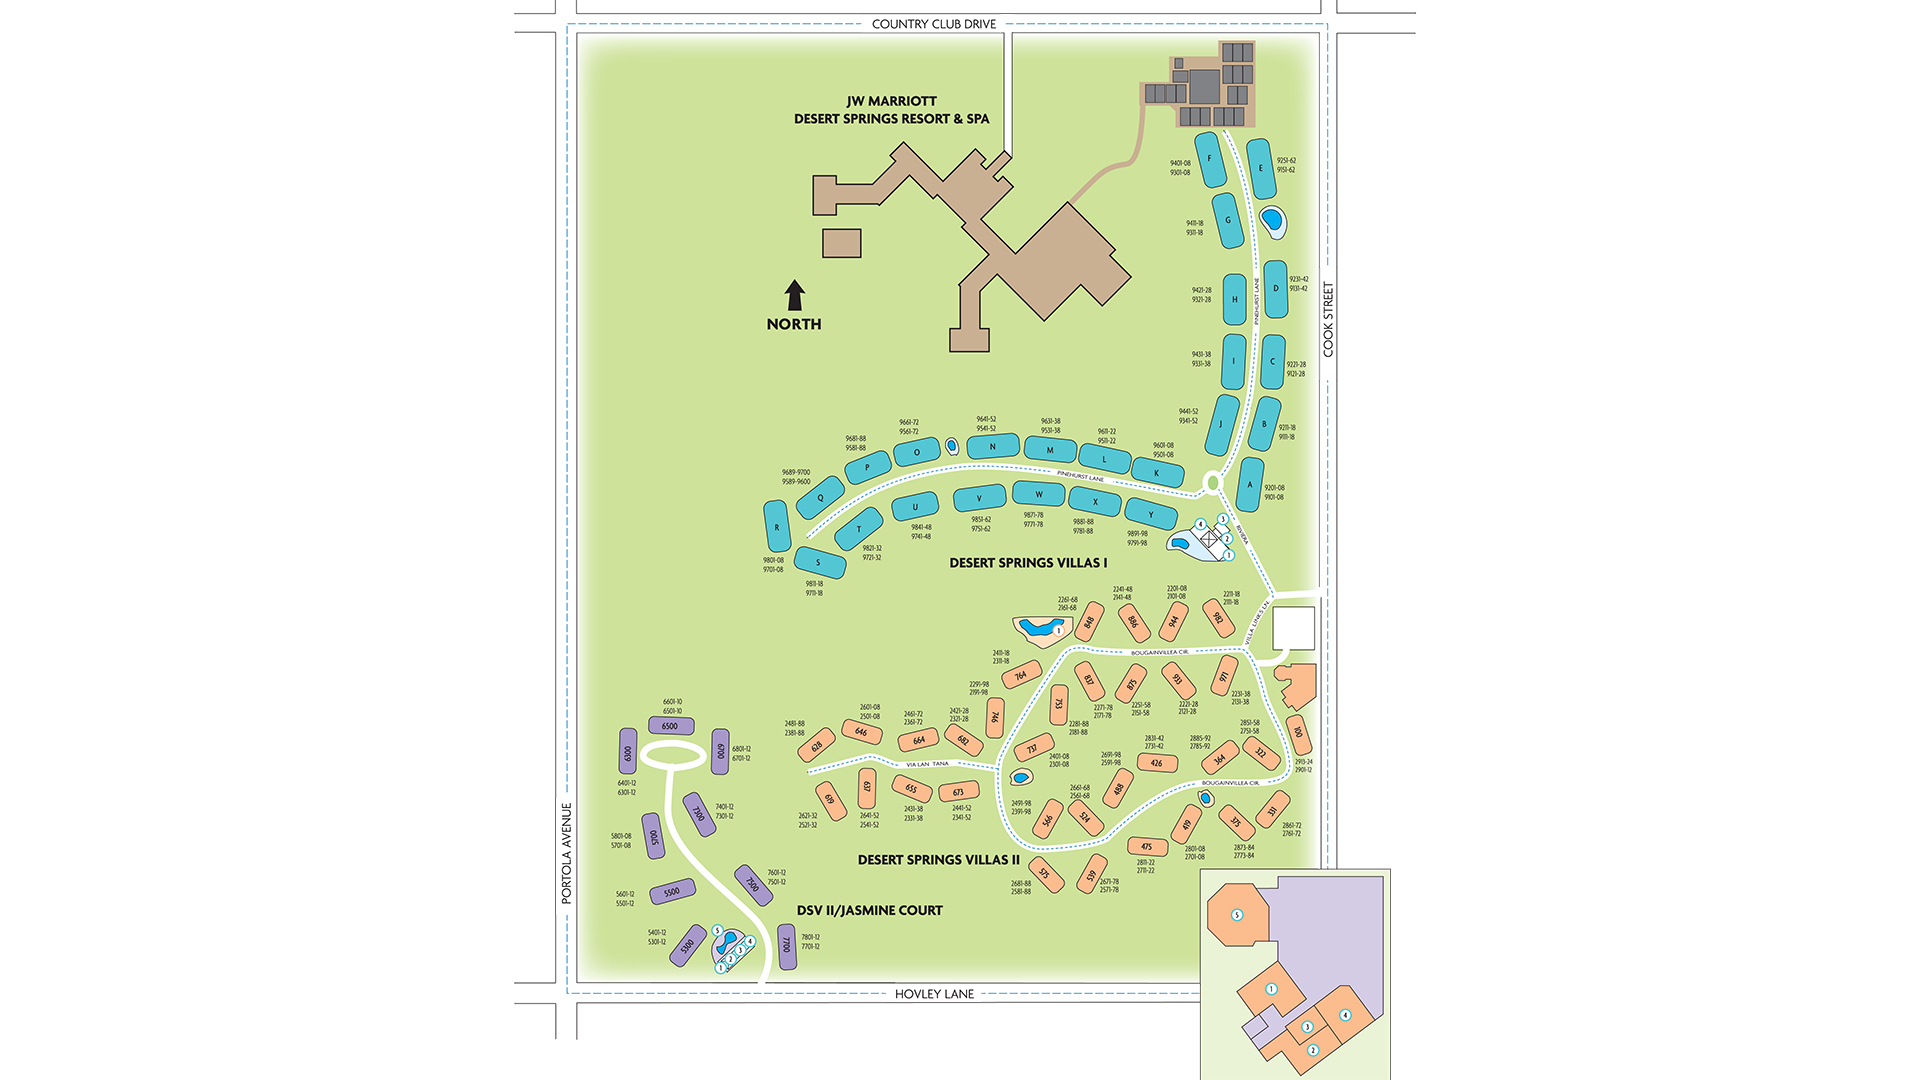 Map | Marriott's Desert Springs Villas | Marriott Vacation Club Tourist Map Of Palm Springs on morton botanical garden palm springs, map of greater palm springs, google map of palm springs, street map of palm springs, map of california and palm springs, celebrities living in palm springs, map of california cities palm springs, map of california showing palm springs, good neighborhoods in palm springs, map of cities around palm springs, i-10 palm springs, downtown palm springs, united states map with palm springs, famous people in palm springs, map of southern california palm springs, best shopping in palm springs, map of hotels in palm springs, map stars homes palm springs,